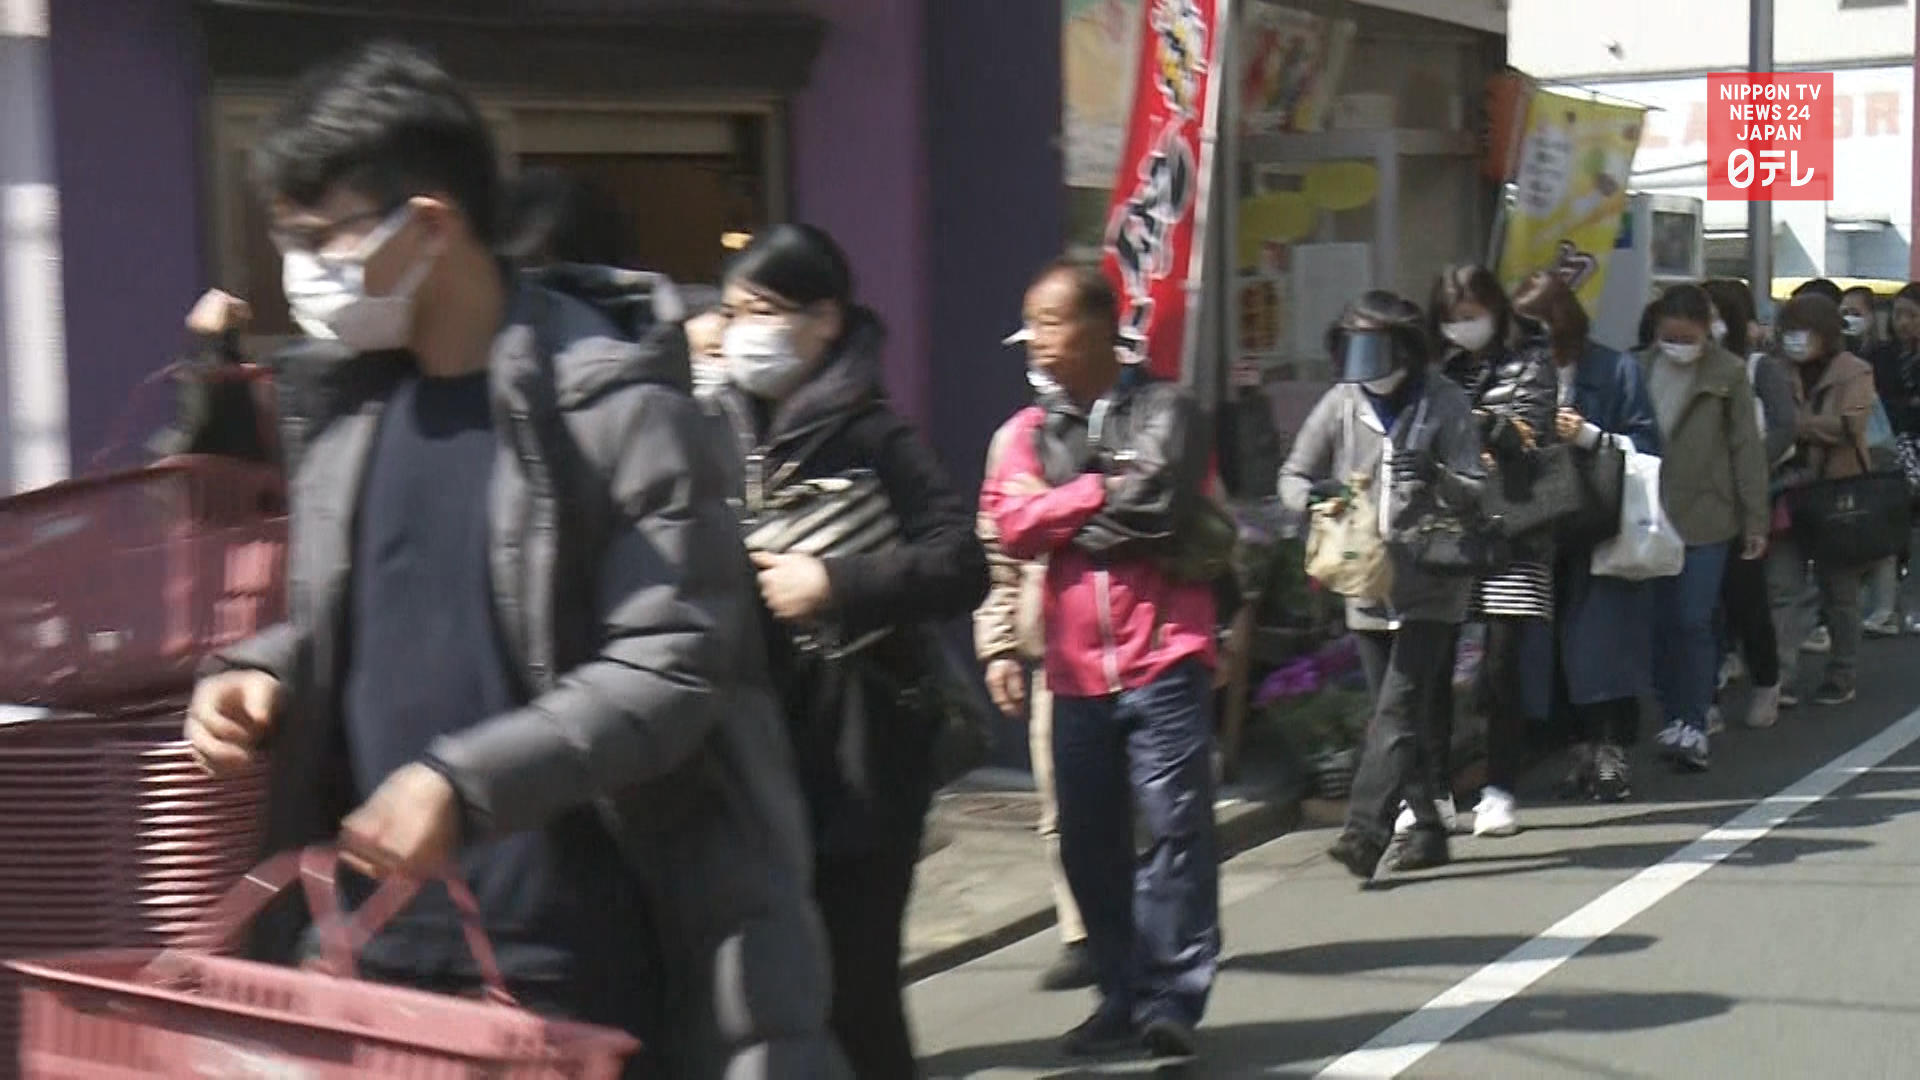 Tokyoites panic buy after governor's 'stay home' request